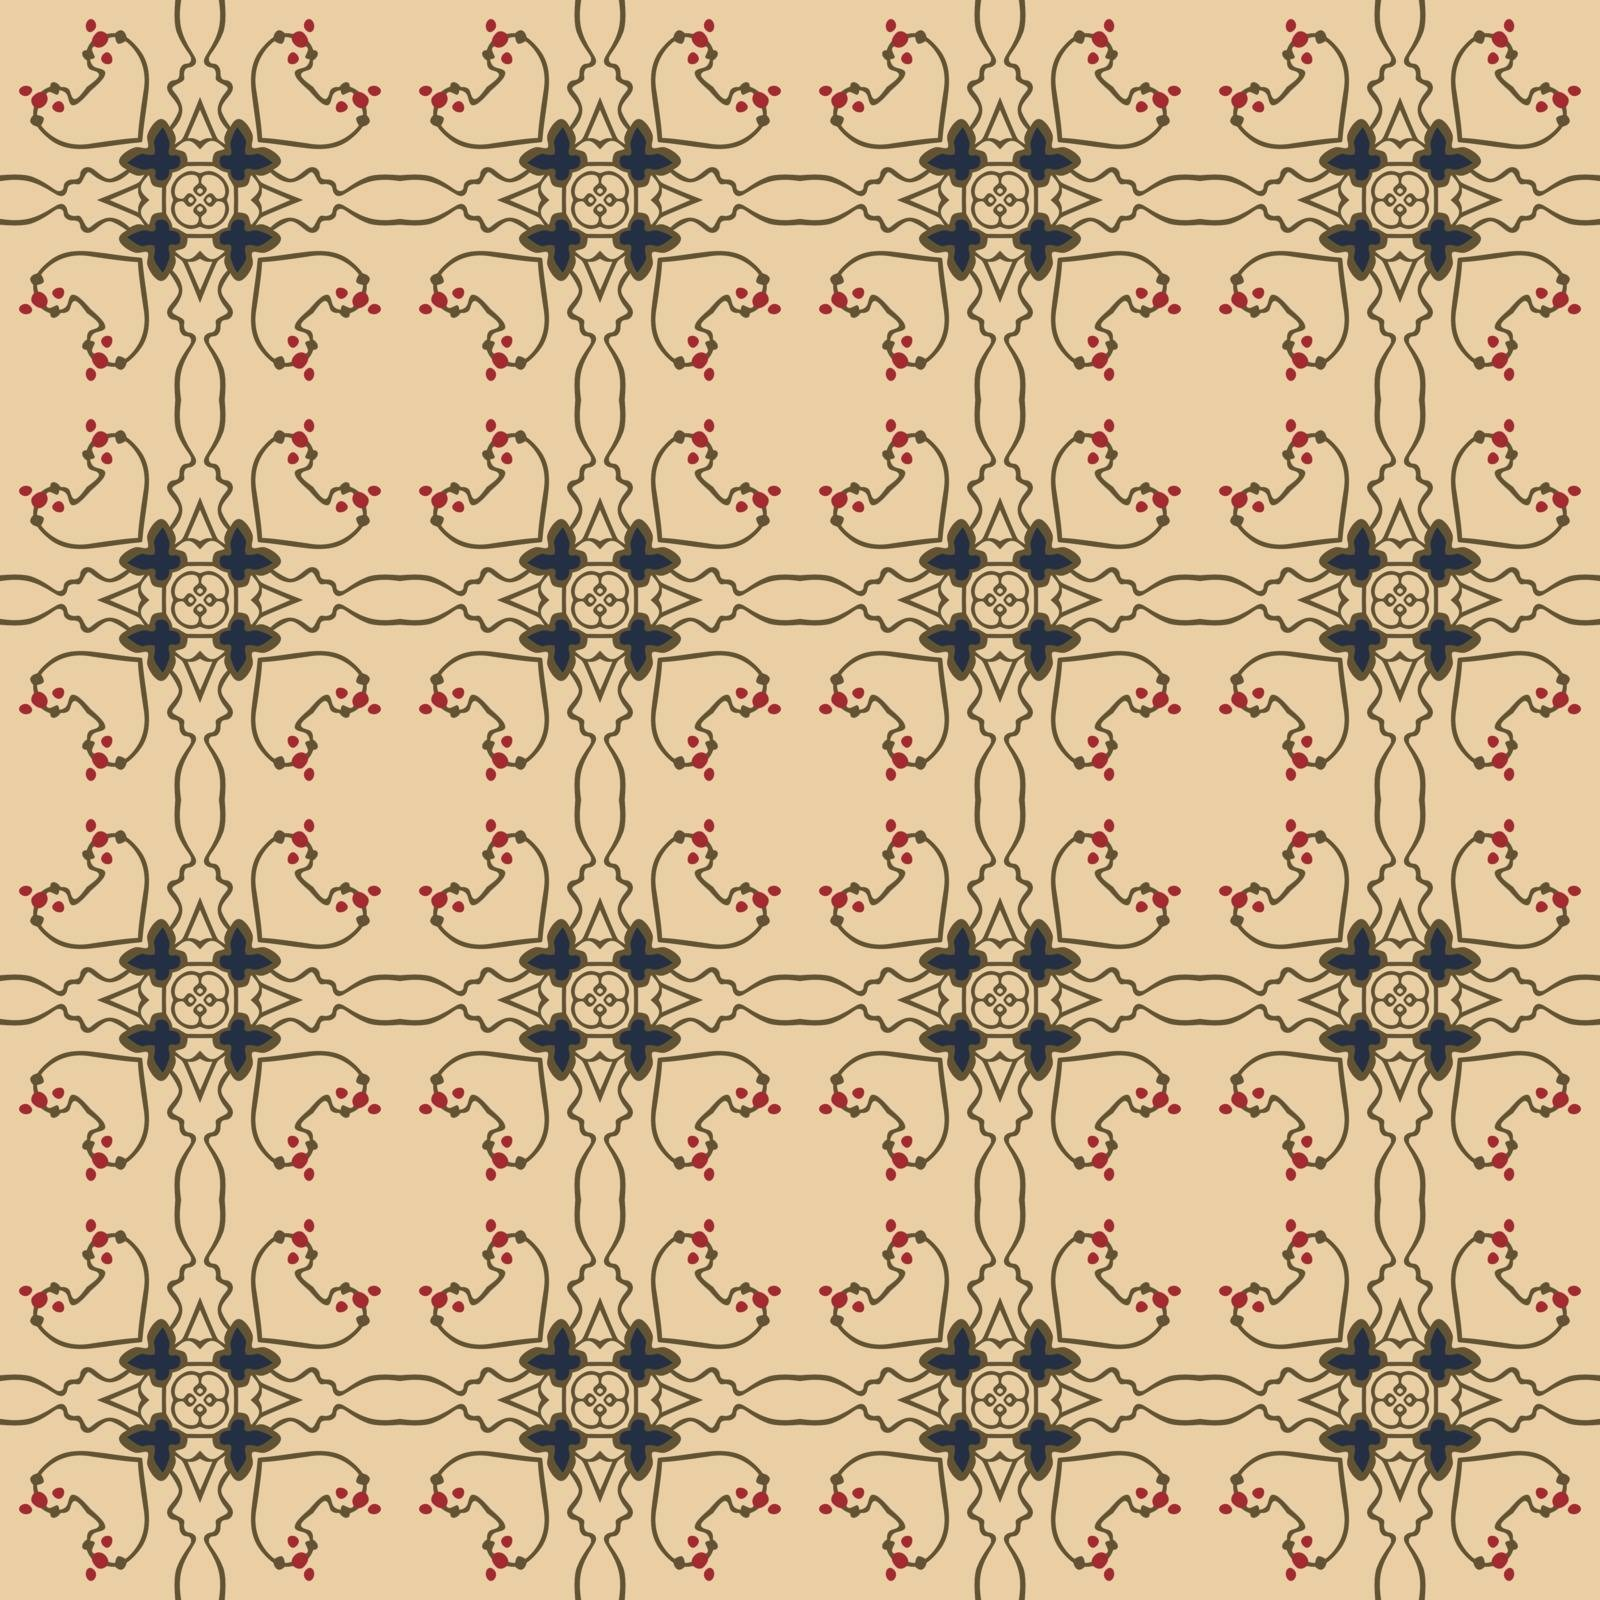 Seamless illustrated pattern made of abstract elements in beige, blue,  red and brown